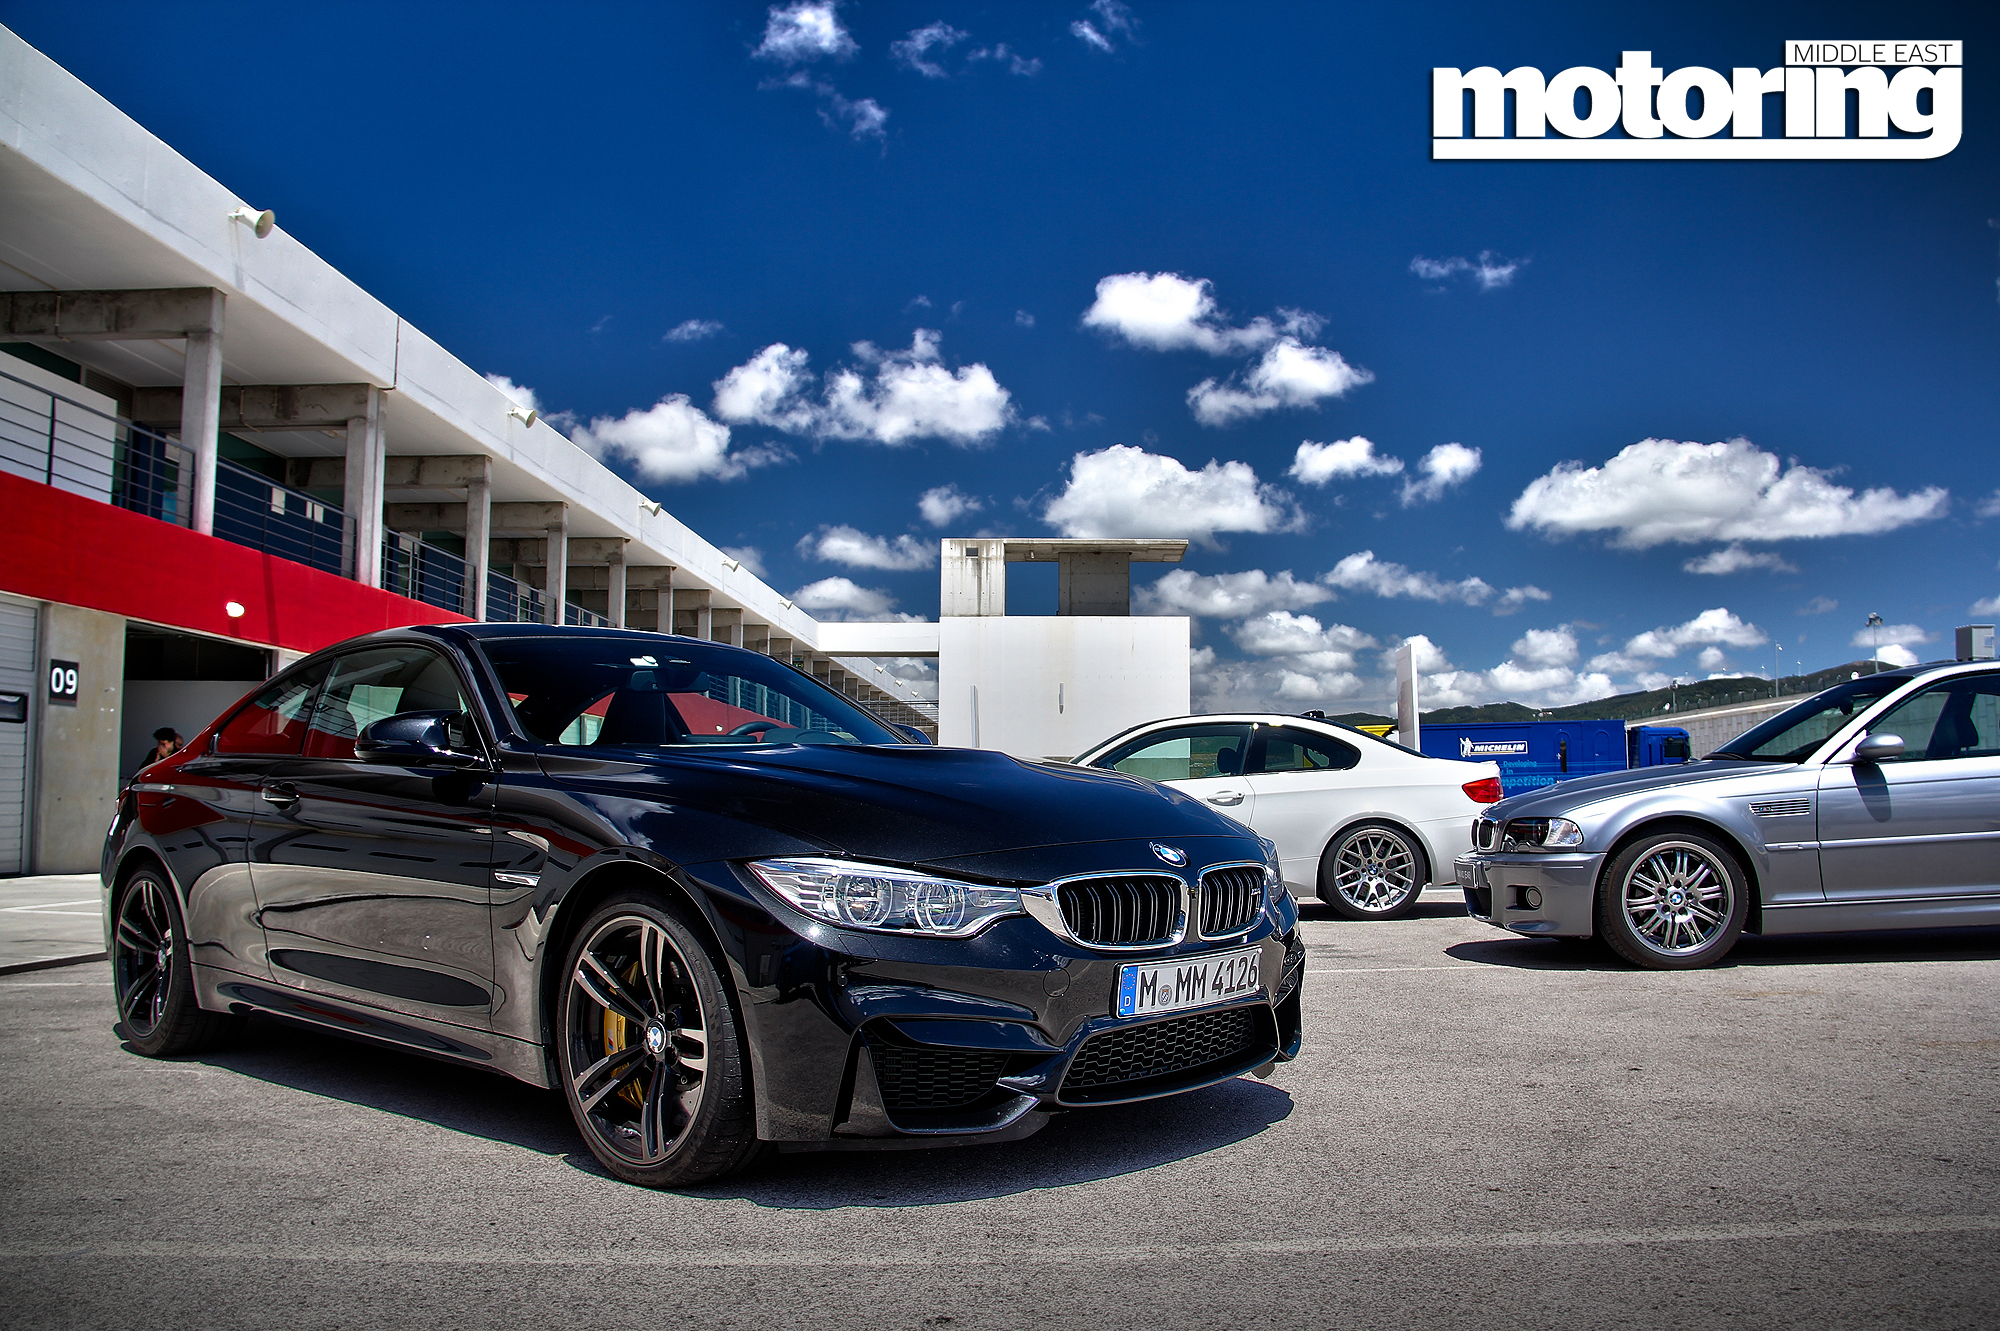 2015 Bmw M3 M4 First Drives Specs And Verdictsmotoring Middle East Car News Reviews And Buying Guides